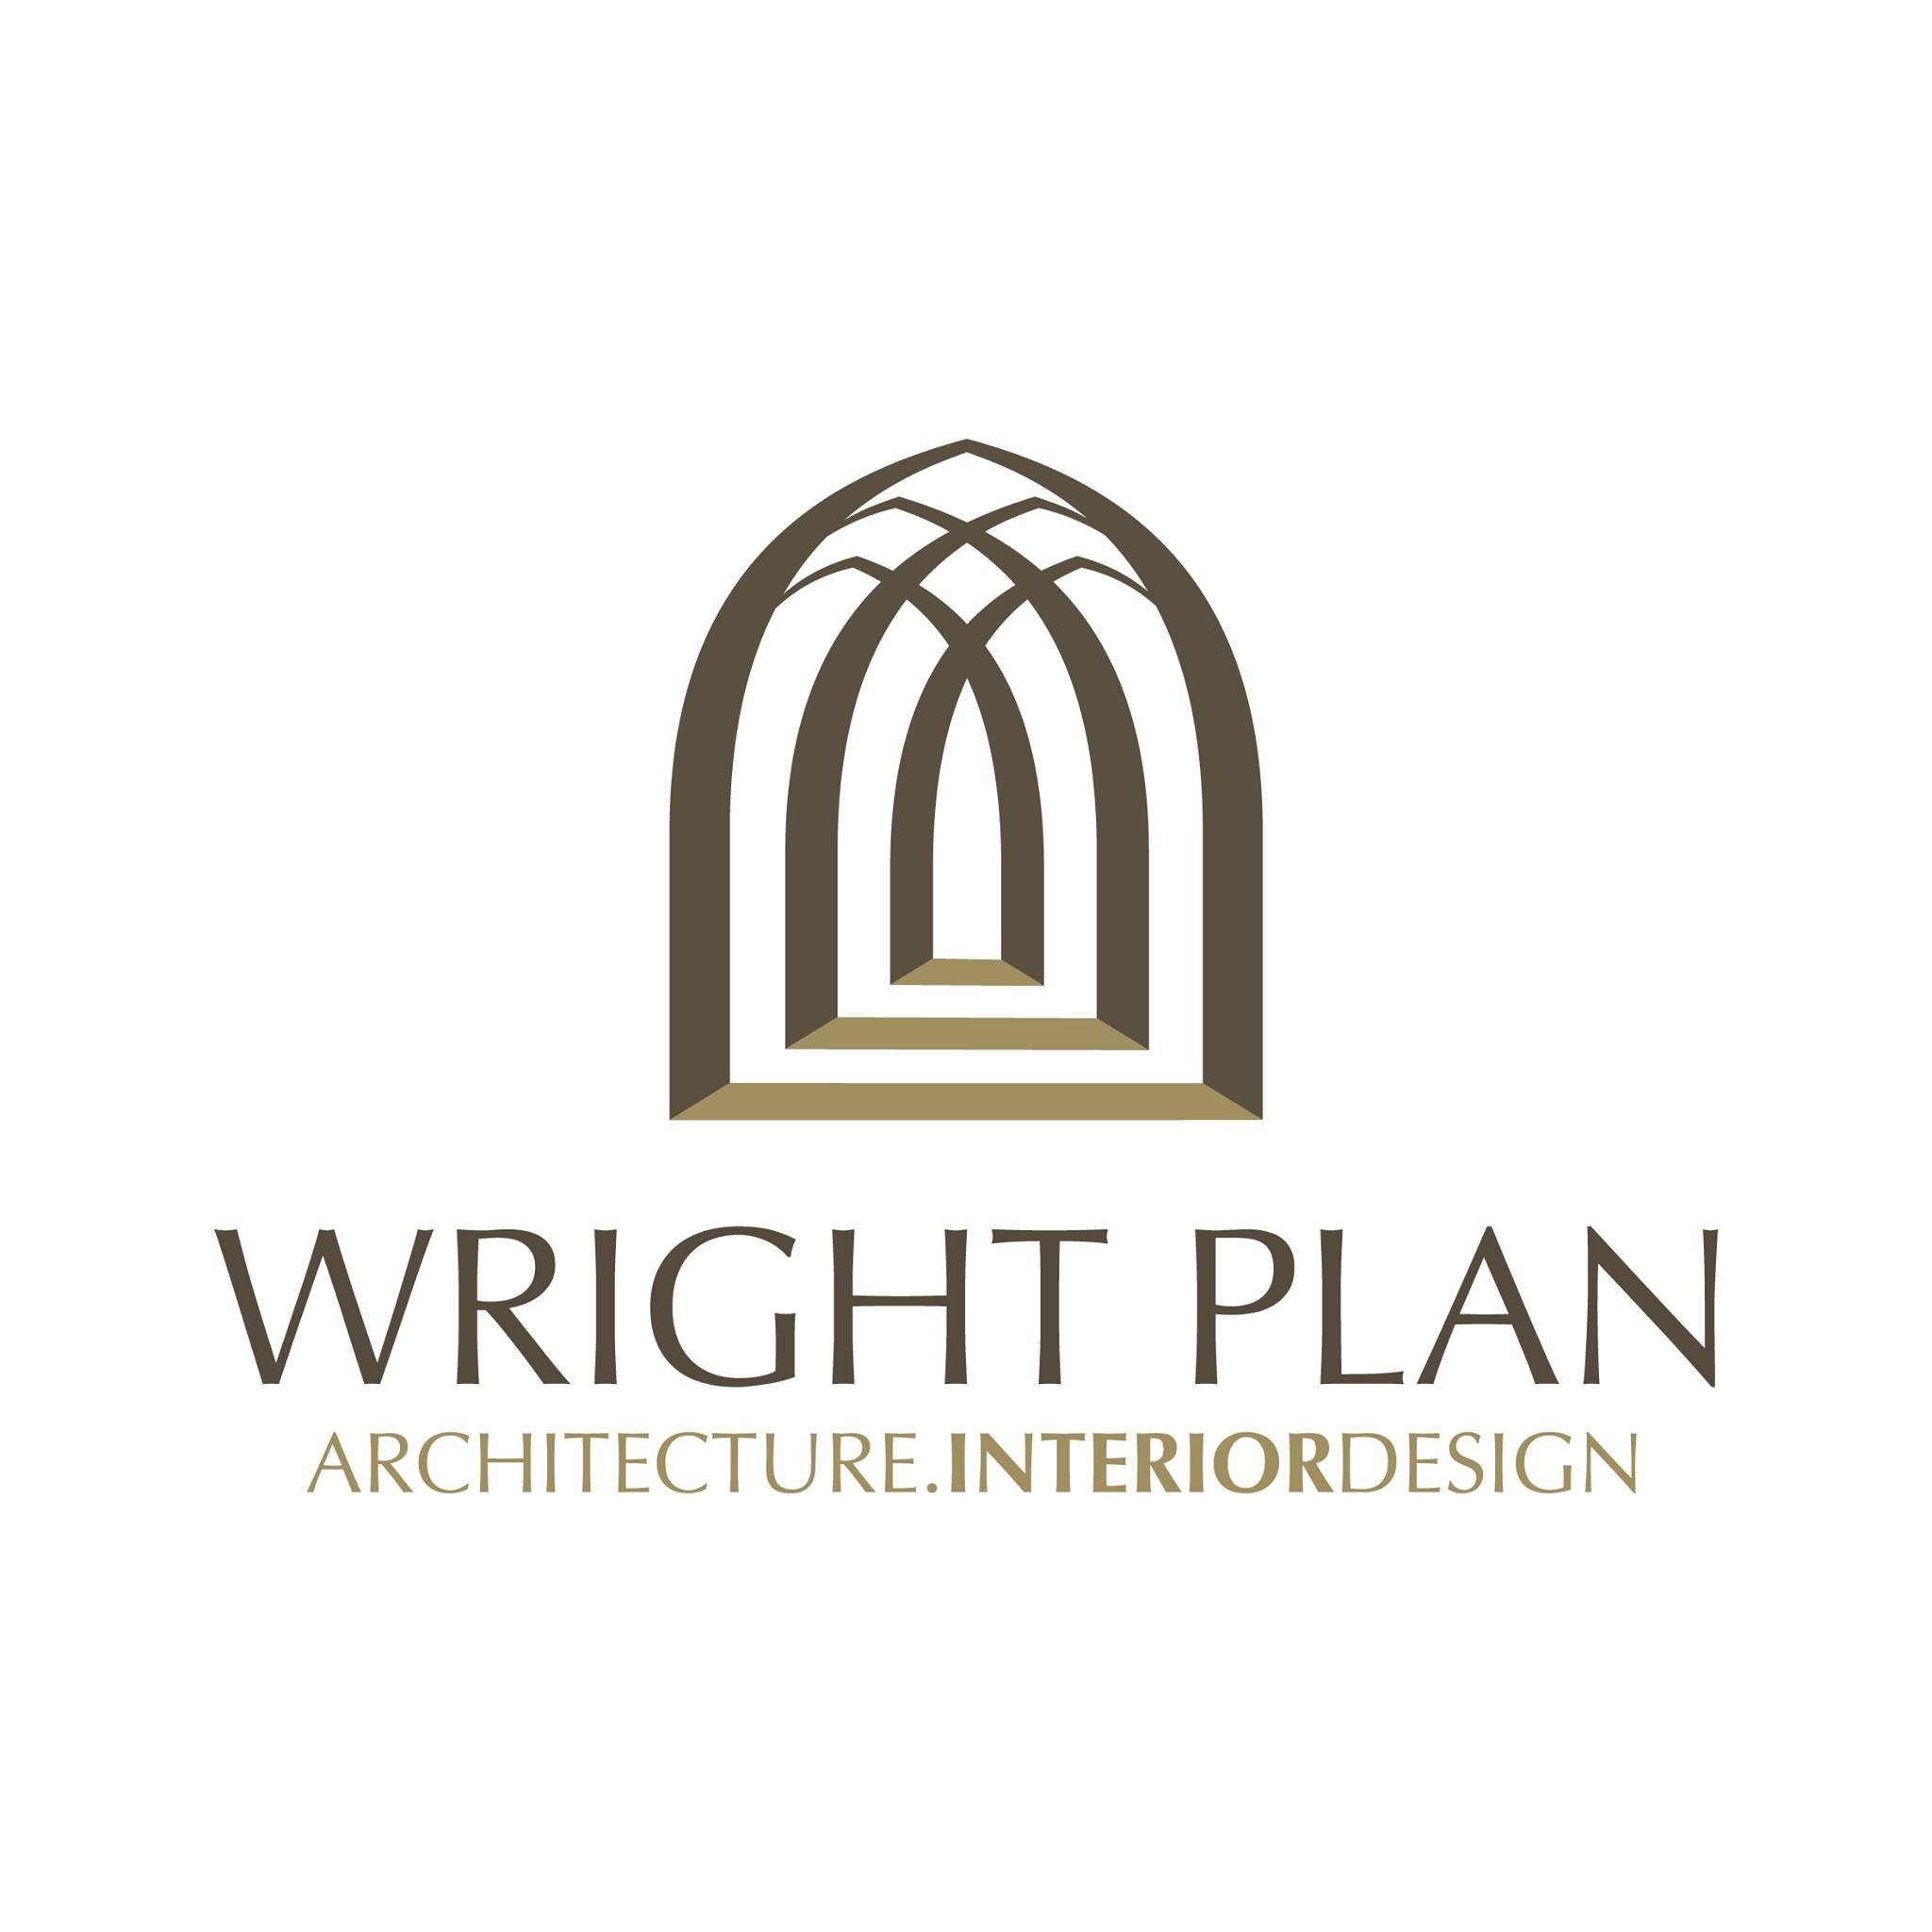 Architects/Interior designers